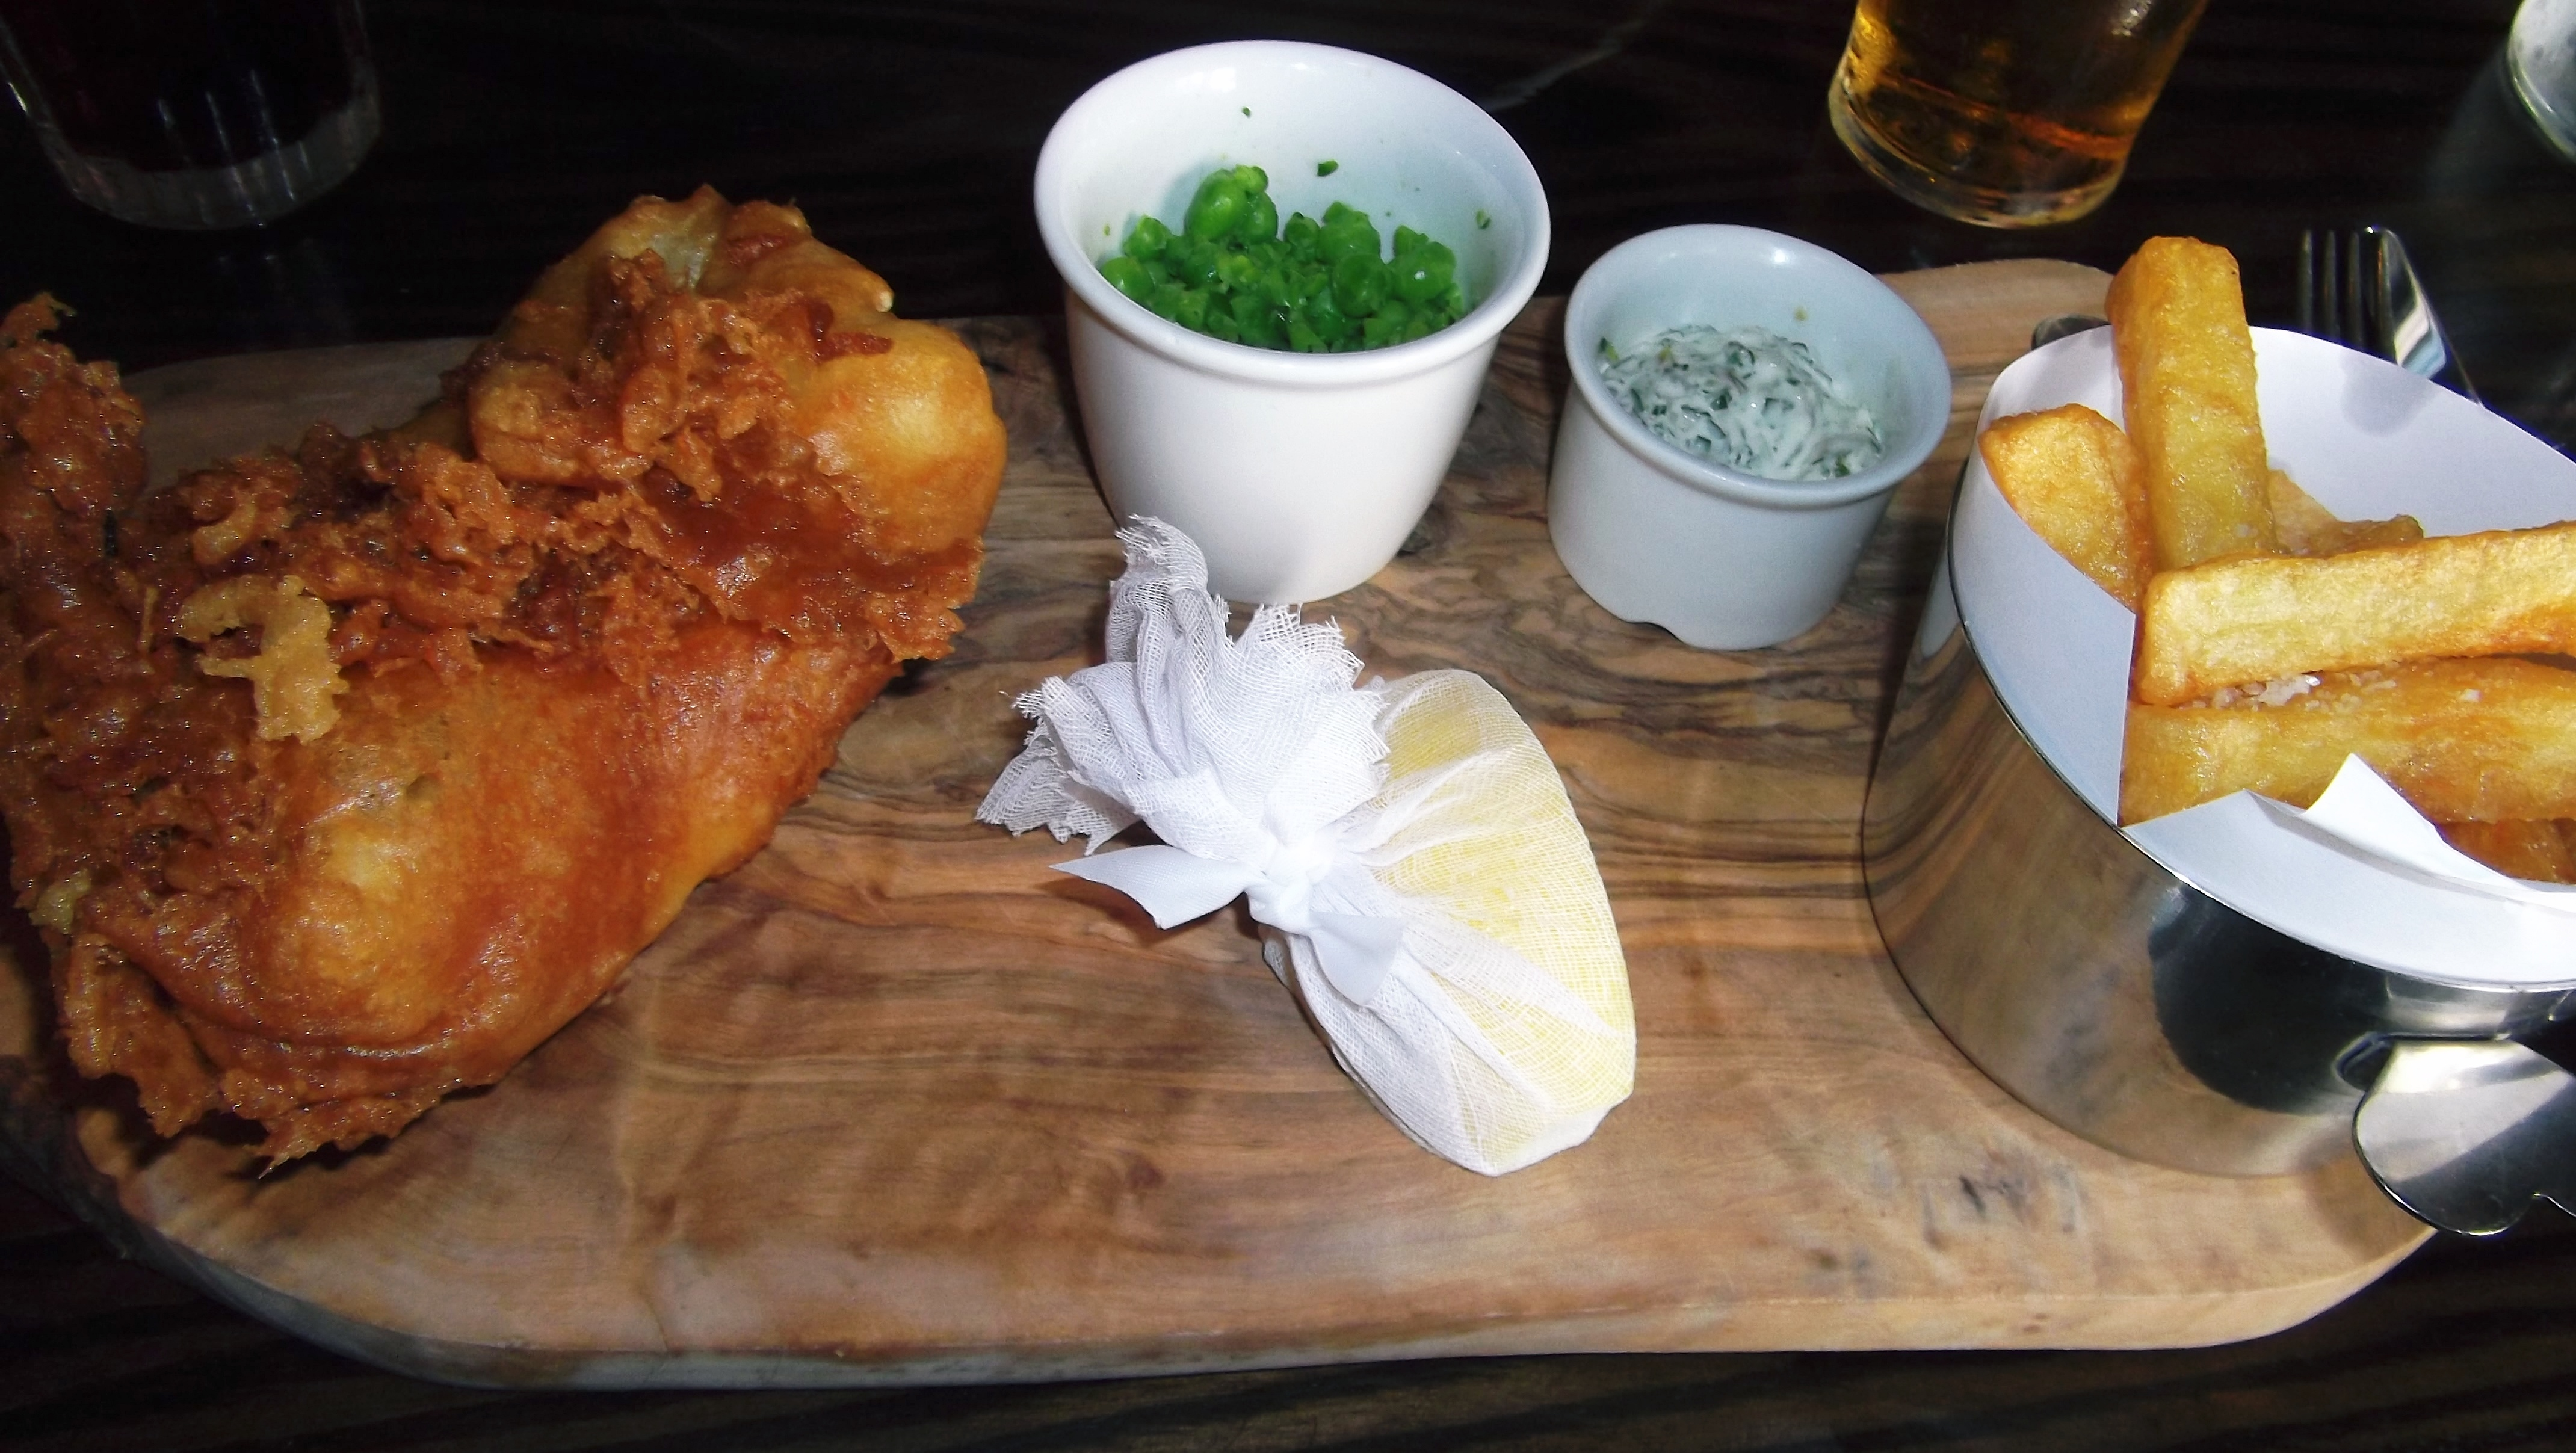 I particularly liked the crispy batter on the fish as well as the little ribbon tied wrap around the lemon plus the cute dish that the chips